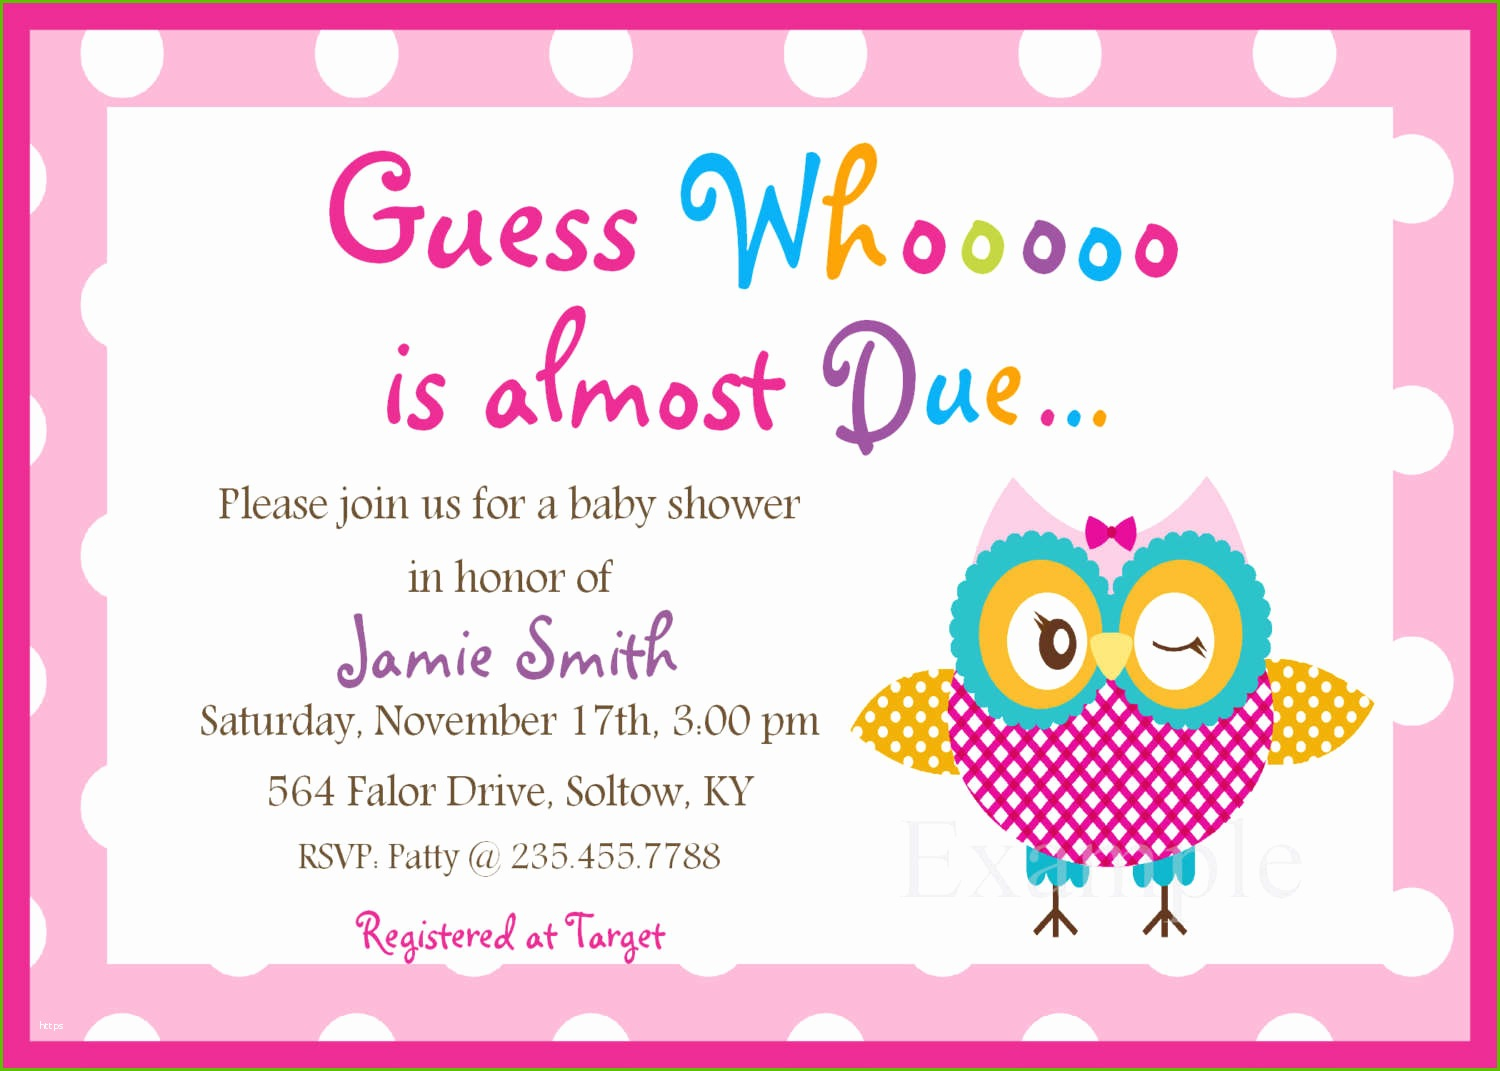 Epic Baby Shower Cards Online Free Printable Luxury Free Printable Baby inside Set Printable Baby Shower Cards